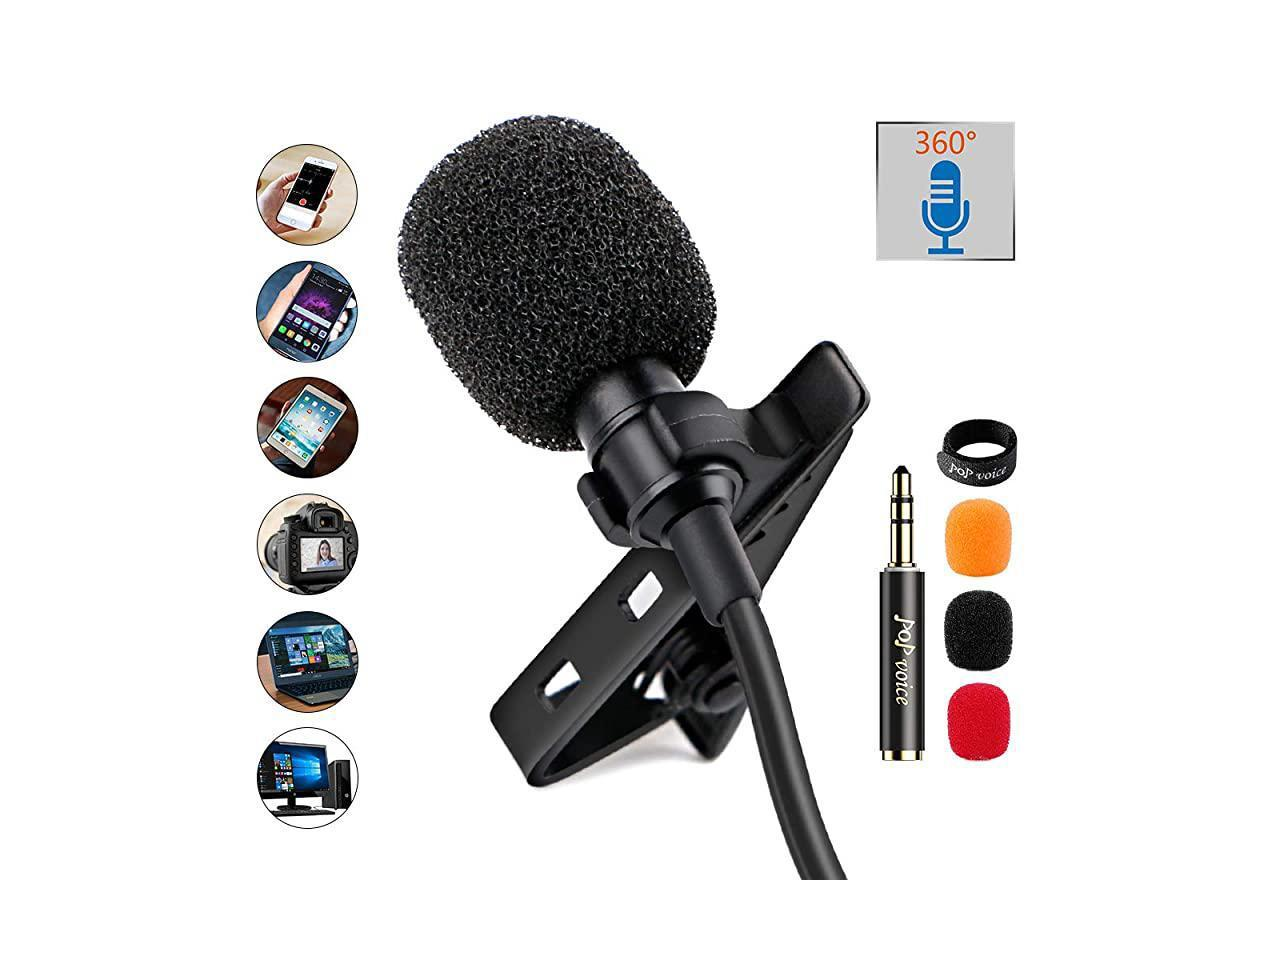 Lav Mics for Phone PC Computer Laptop USB-C Lavalier Lapel Microphone for Android Smartphone with Earphone Jack Mini Omnidirectional Condenser Mic for Video Recording//Interview//Podcast//Streaming